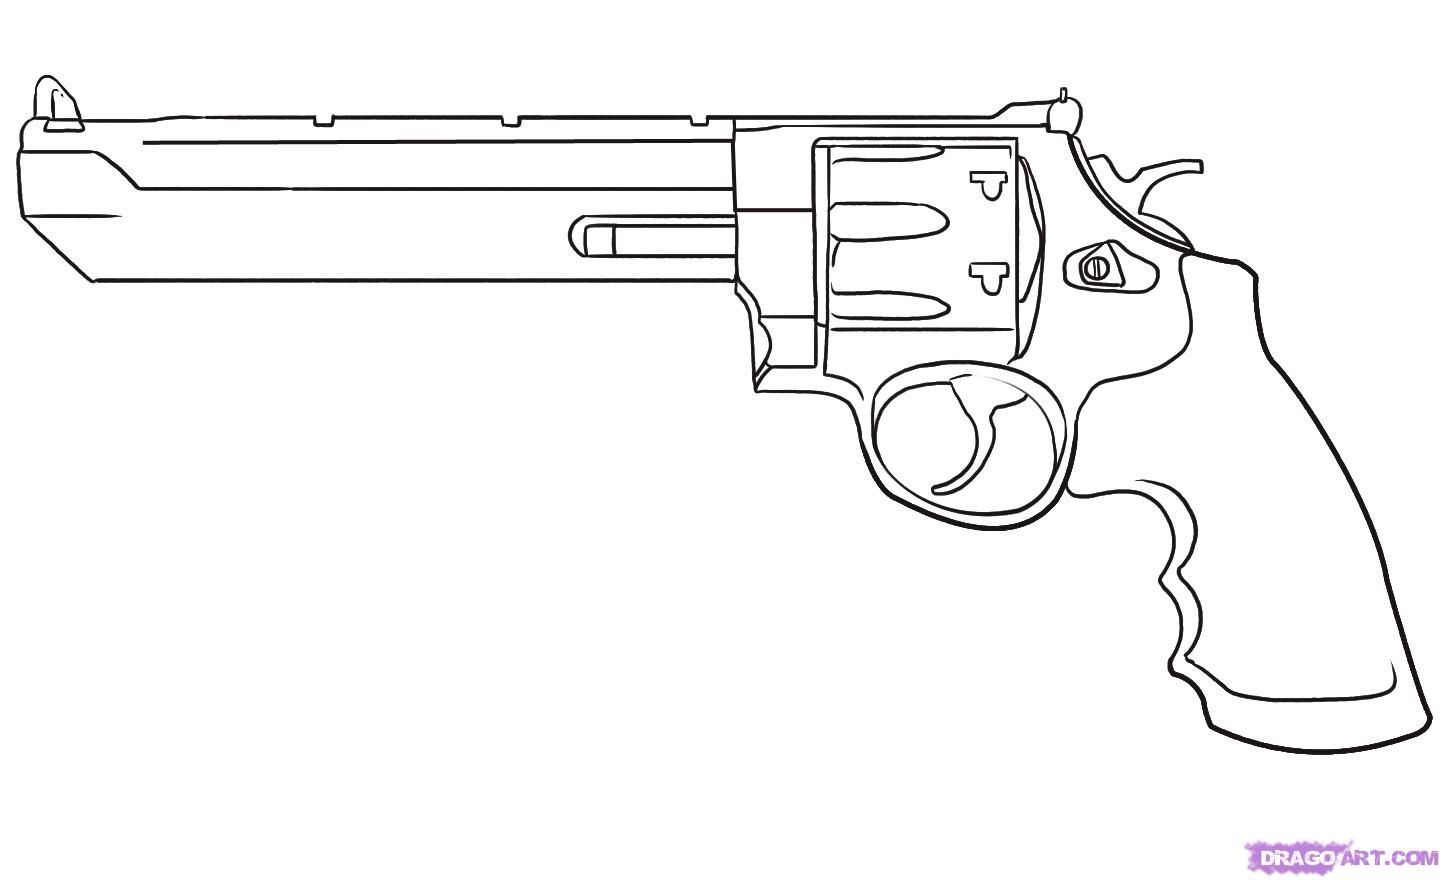 Cool drawing of a revolver pistol